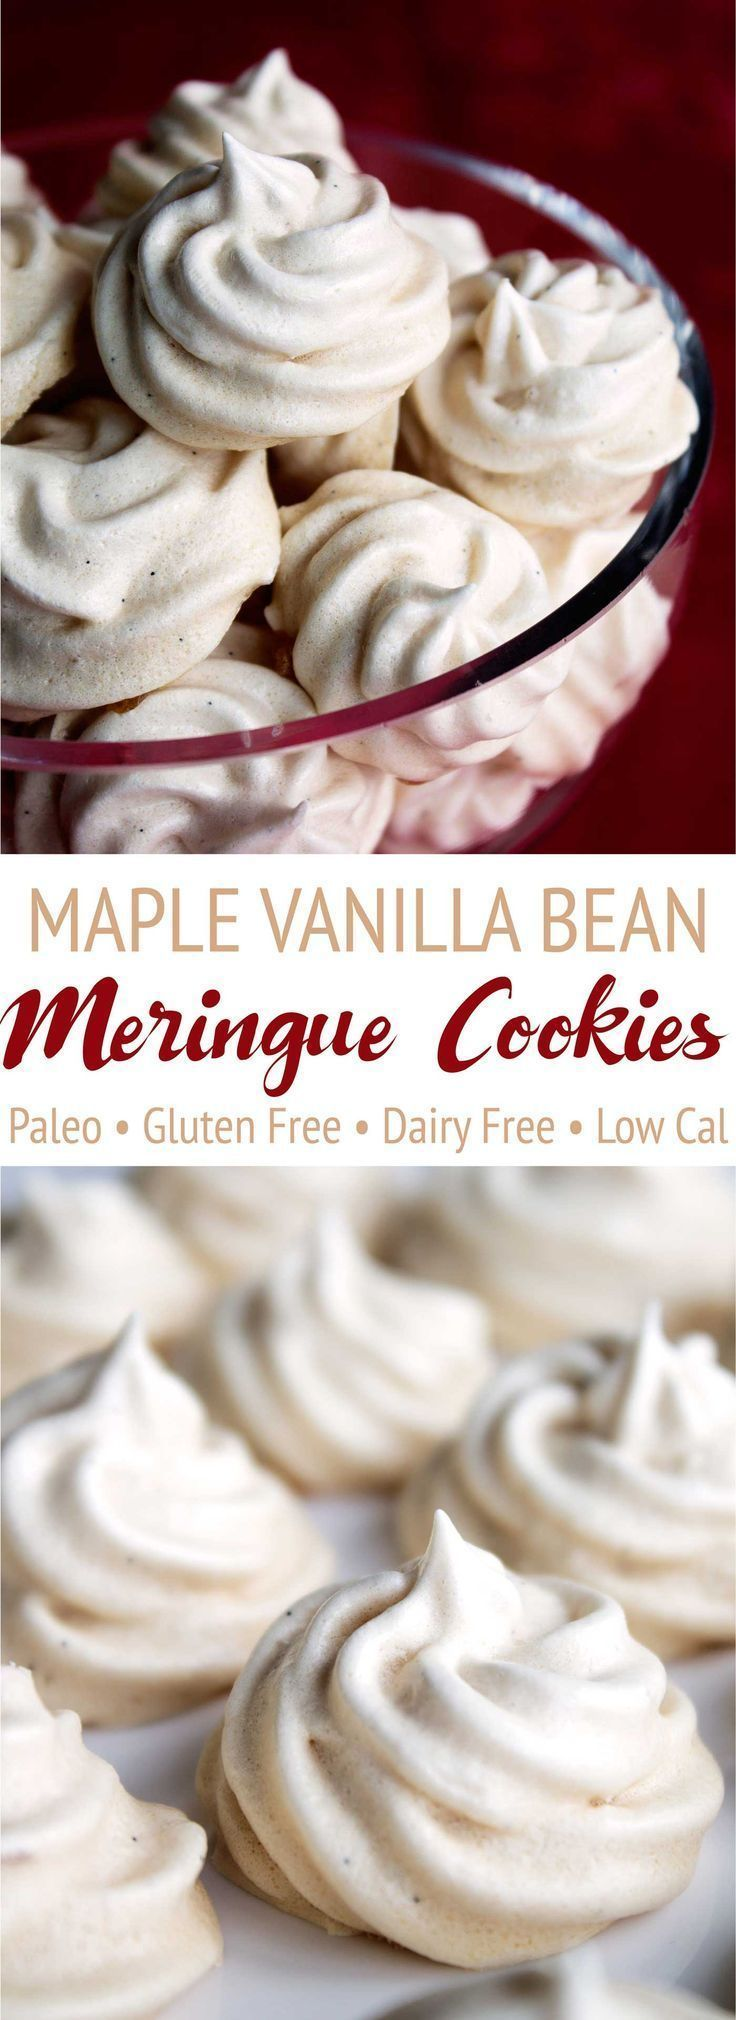 These maple vanilla bean meringue cookies are completely paleo! Maple syrup replaces refined sugar to create these fluffy, irresistible cookies!